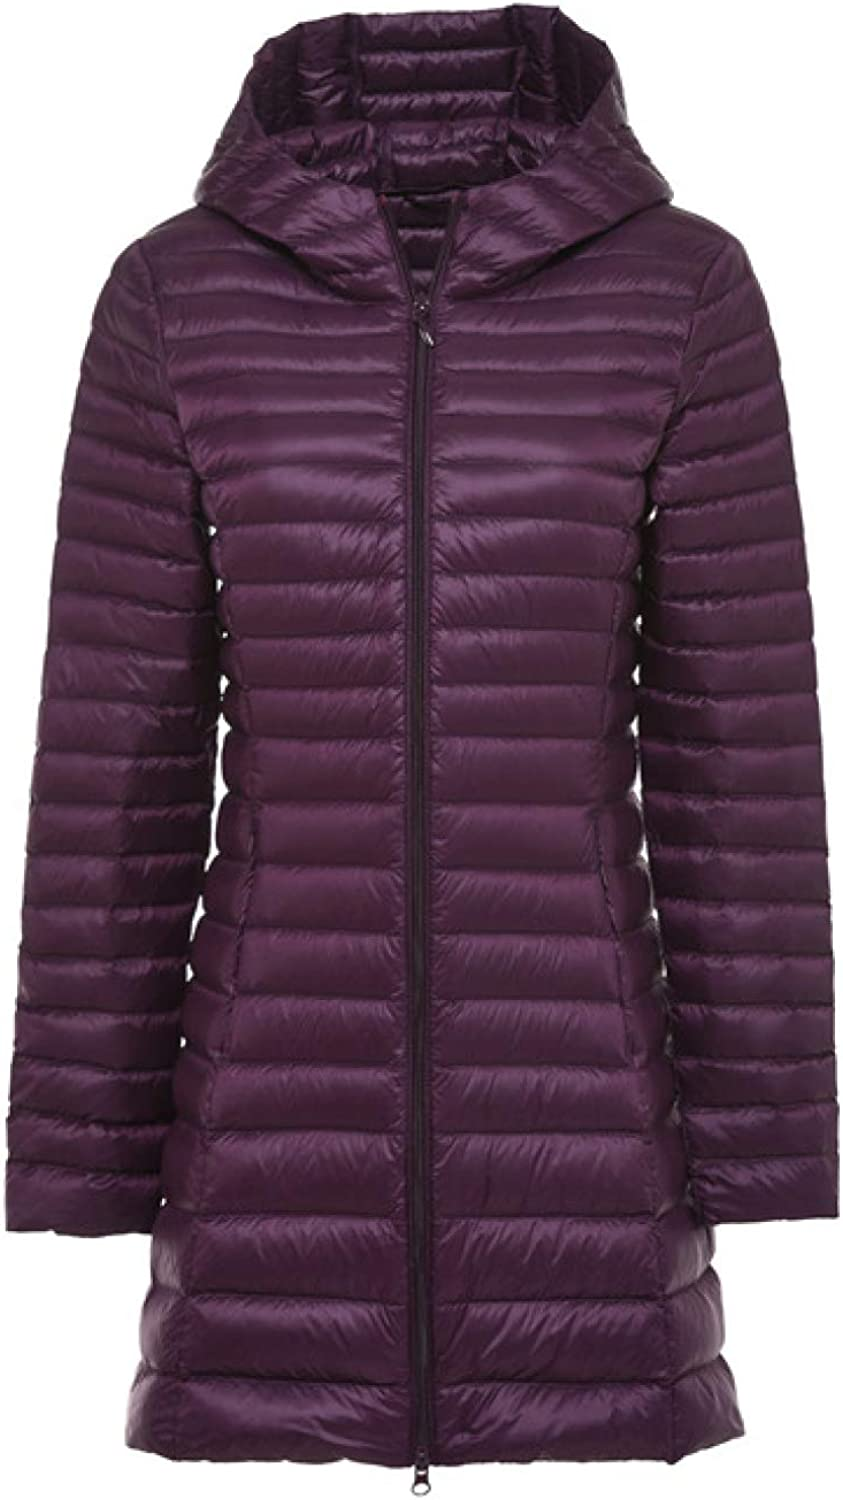 Womens Packable Jacket , Winter Coat Puffer Jacket with Pockets